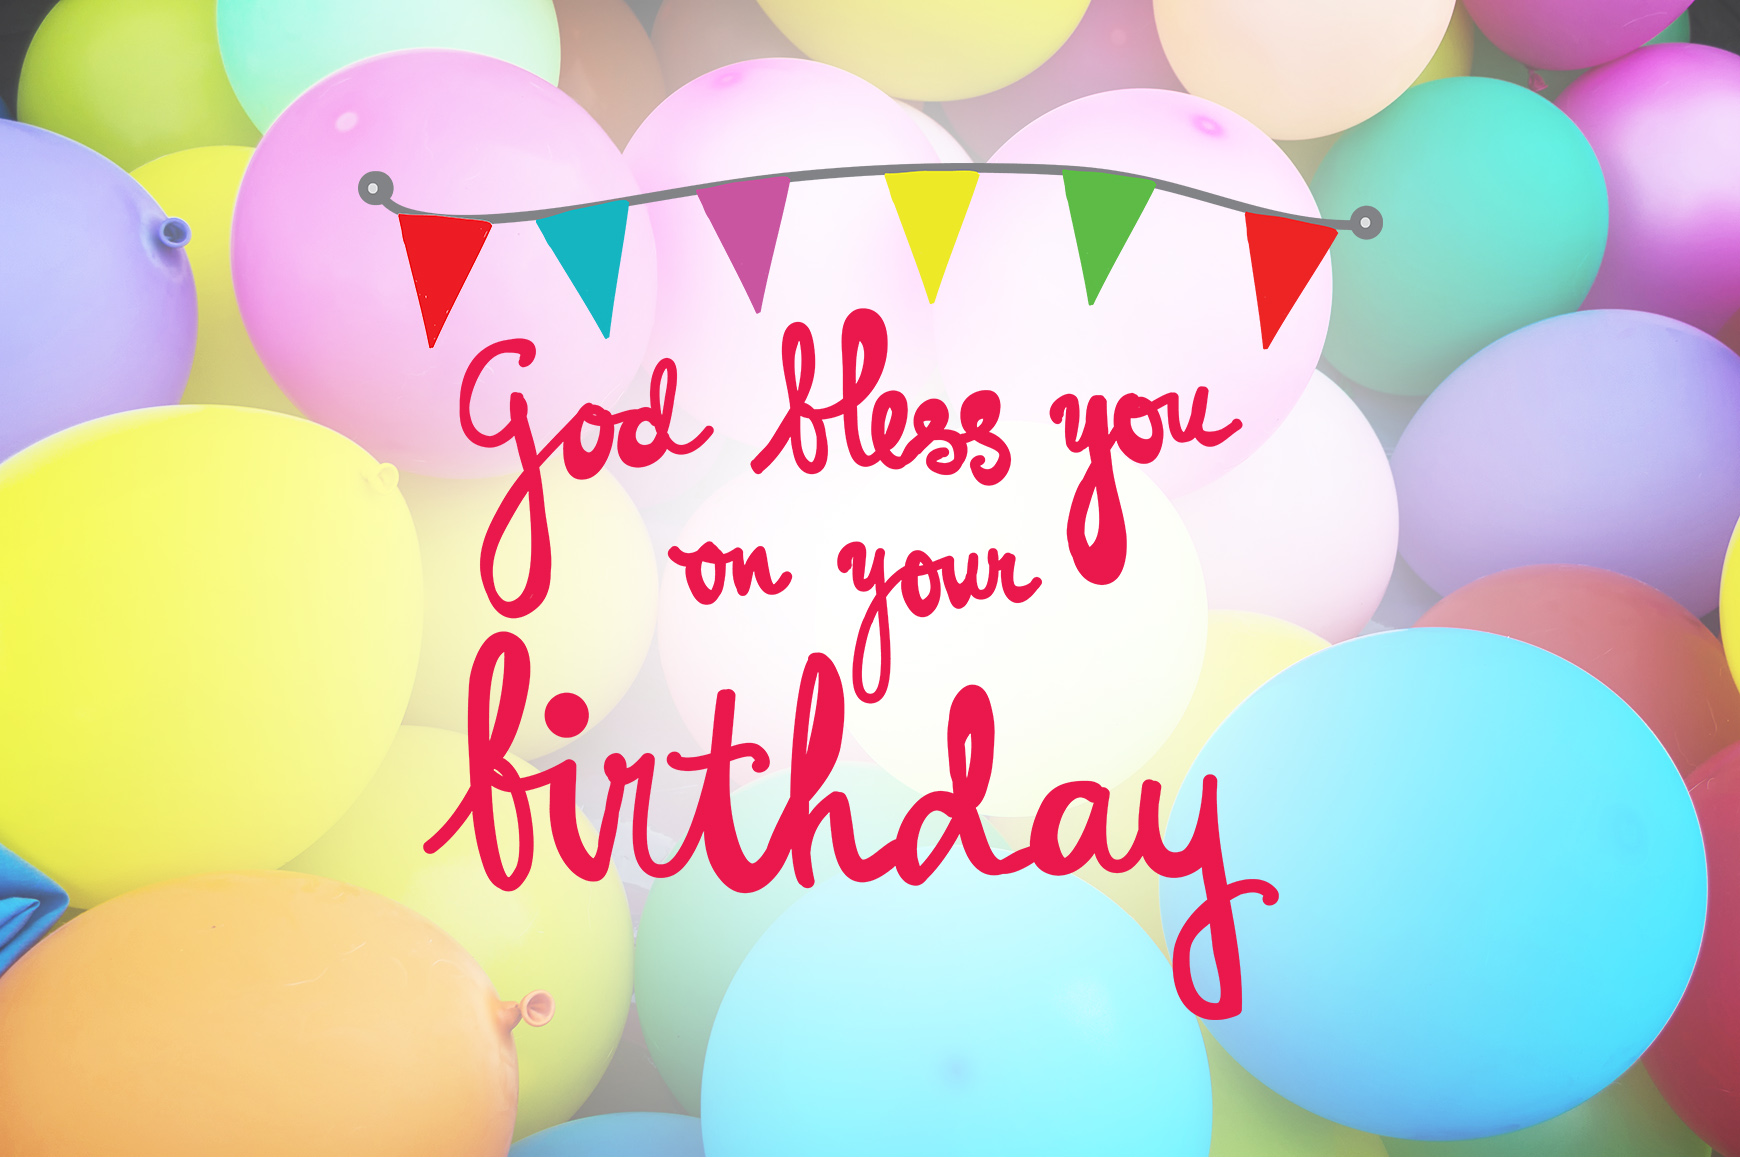 God Bless You On Your Birthday Quotes Graphic By Wienscollection Creative Fabrica